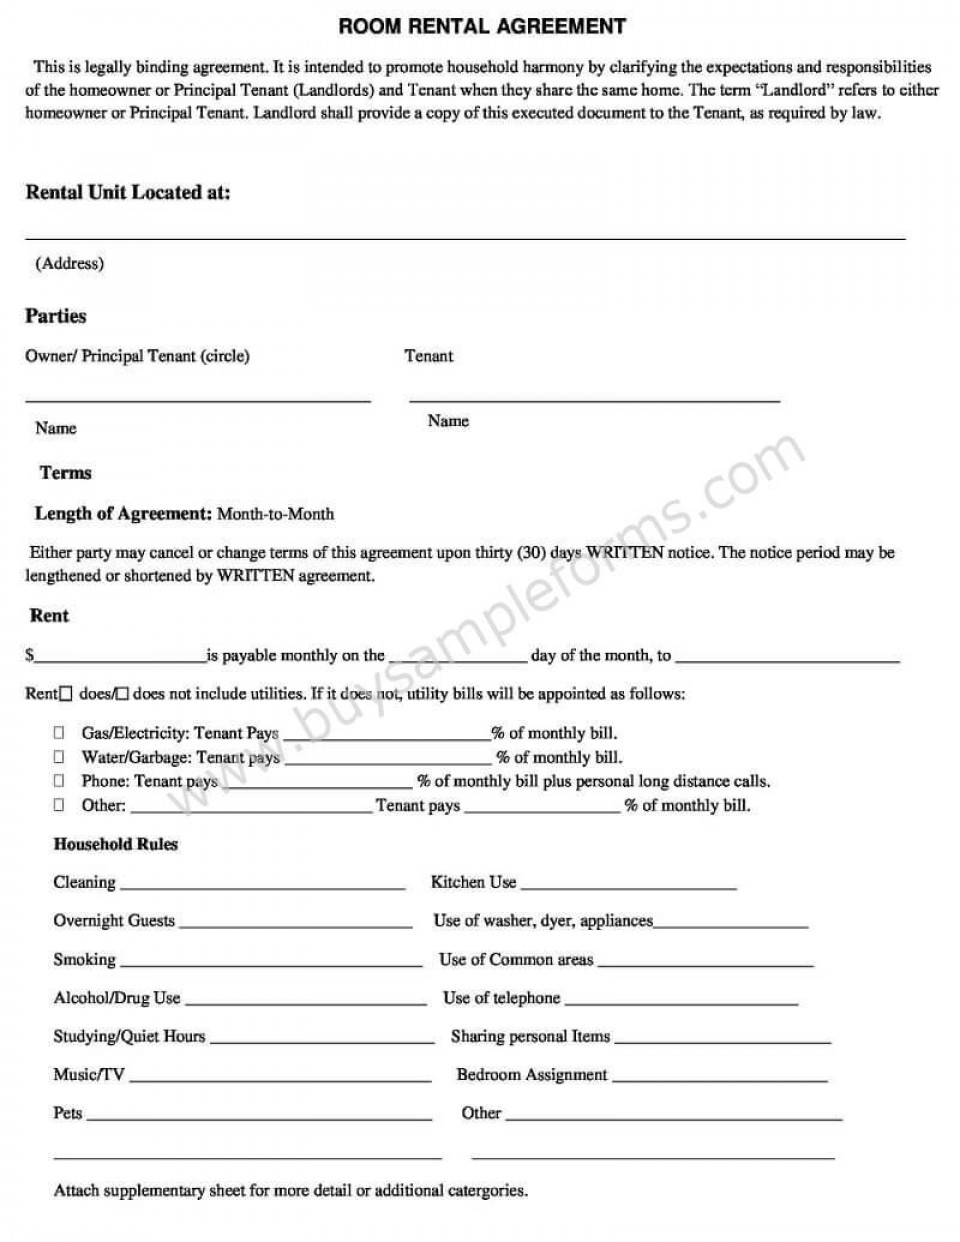 008 Incredible Template For Rental Agreement Example  Lease Sample House Car960